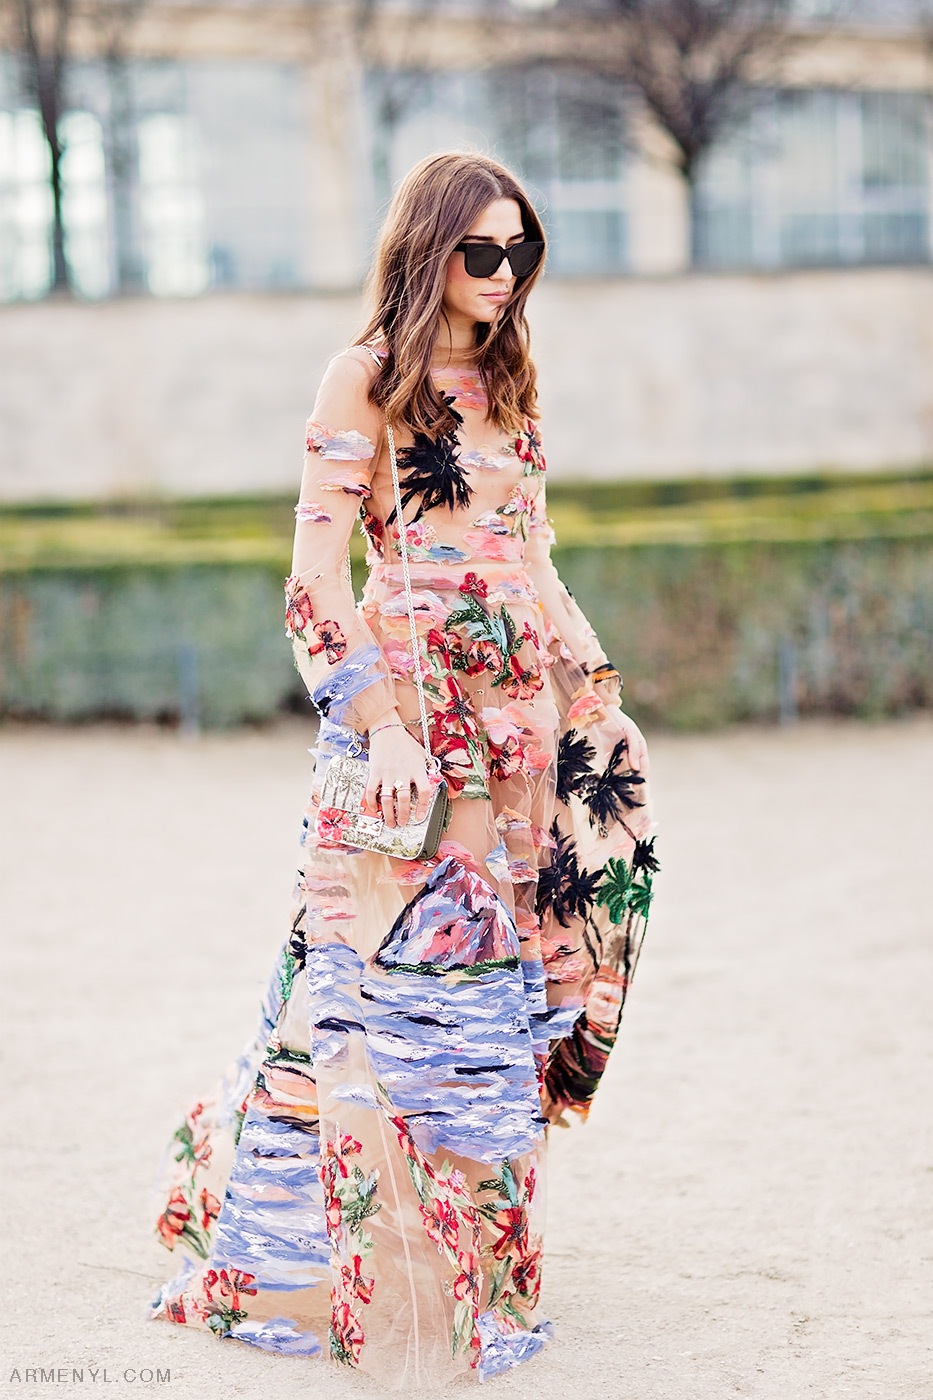 Street Style Eleonora Carisi in Valentino Hawaiian Couture Dress at Paris Fashion Week Jardin des Tuileries by Armenyl.com